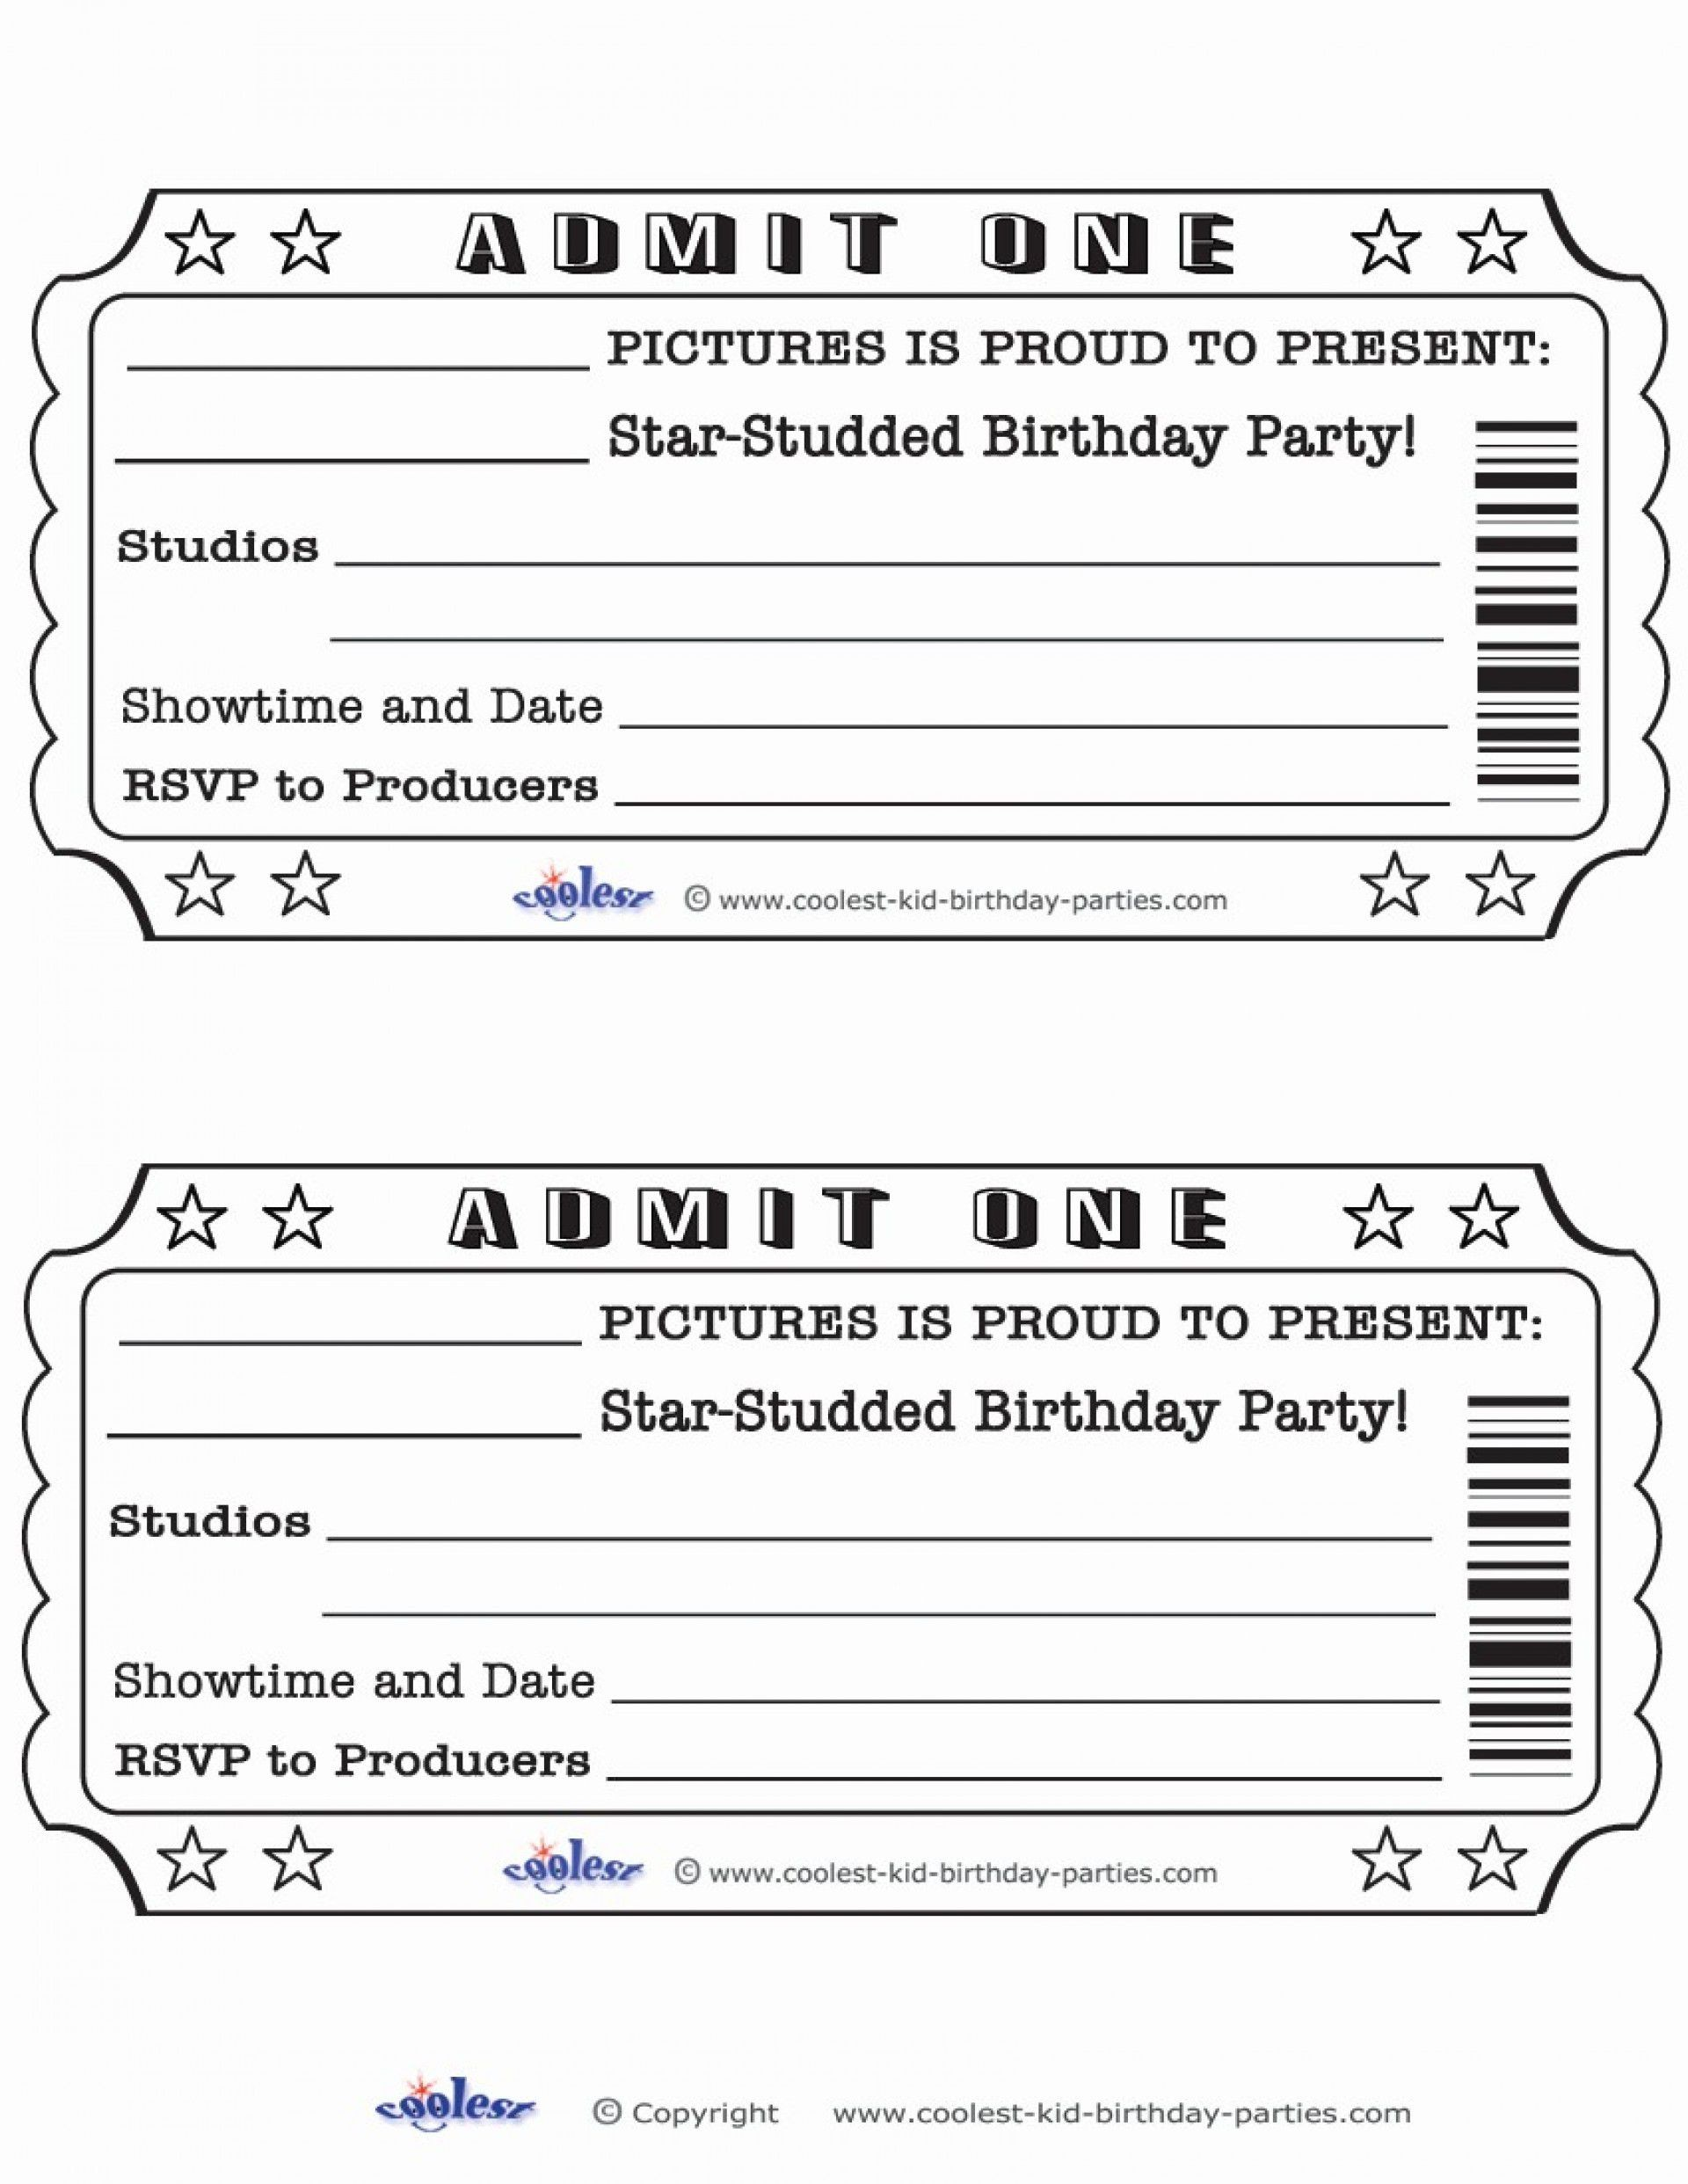 004 Unusual Free Printable Ticket Template High Definition  Raffle Printing Airline For Gift Concert1920